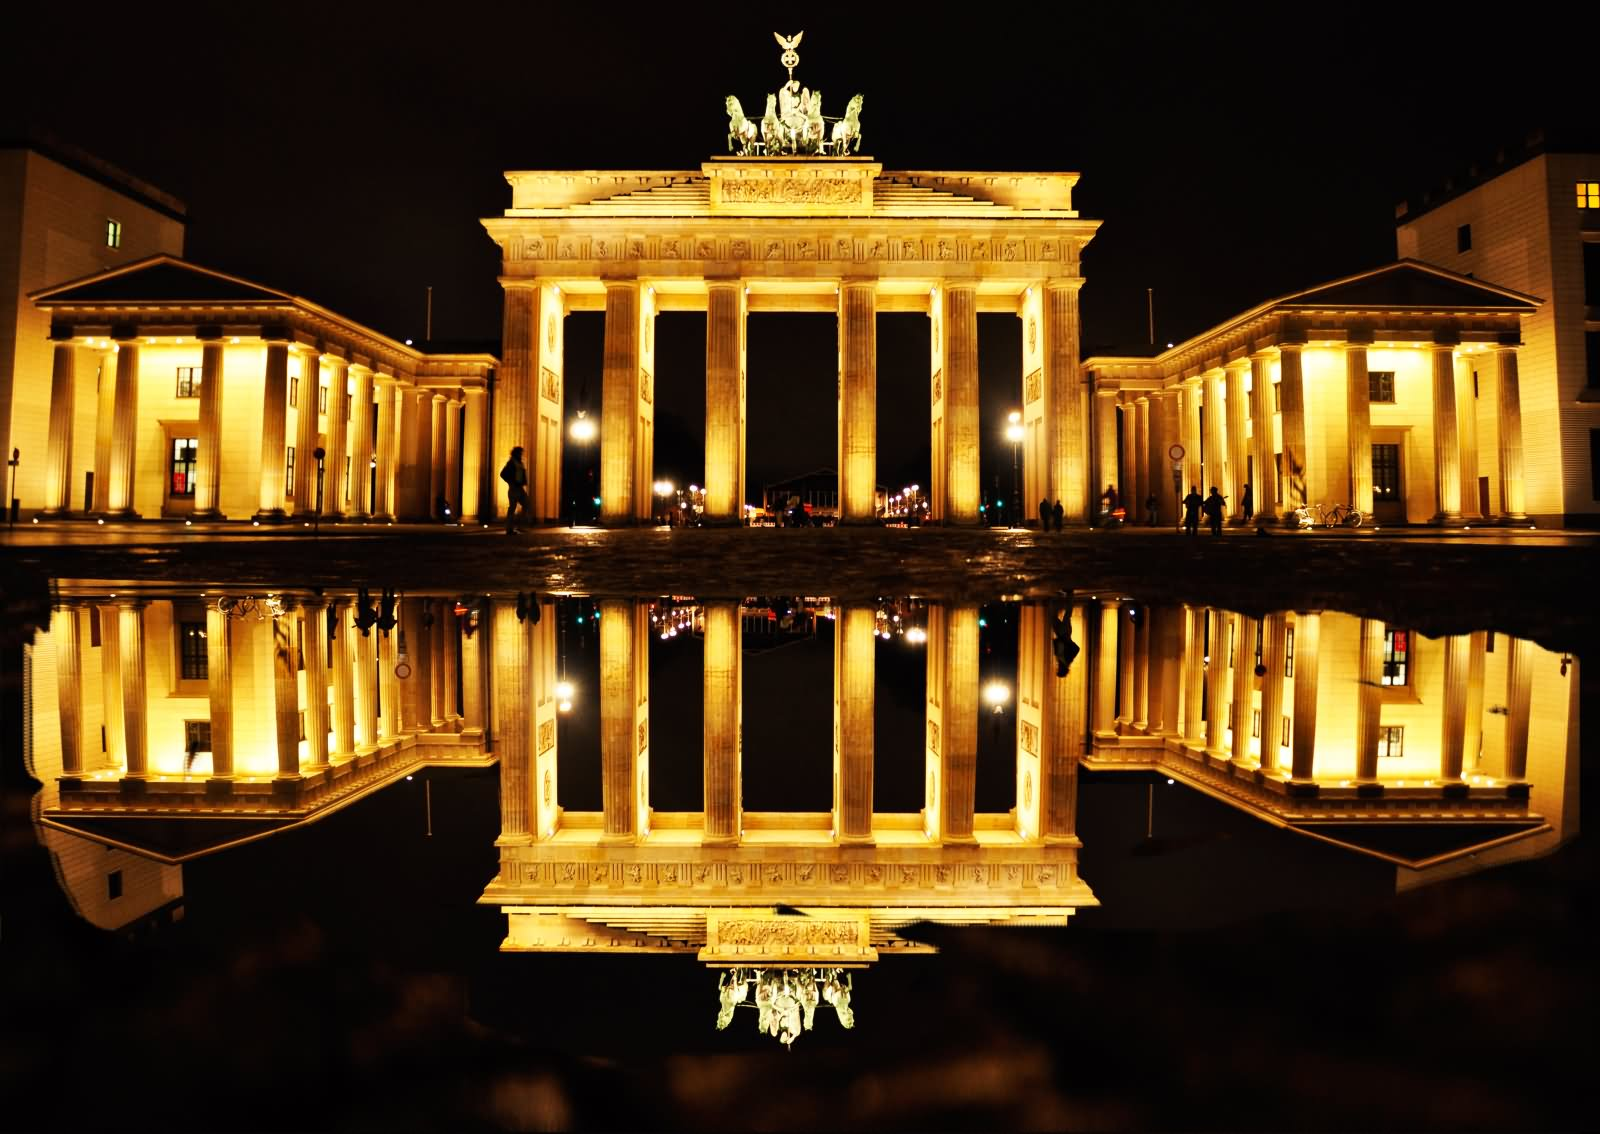 brandenburg gate at night - photo #5